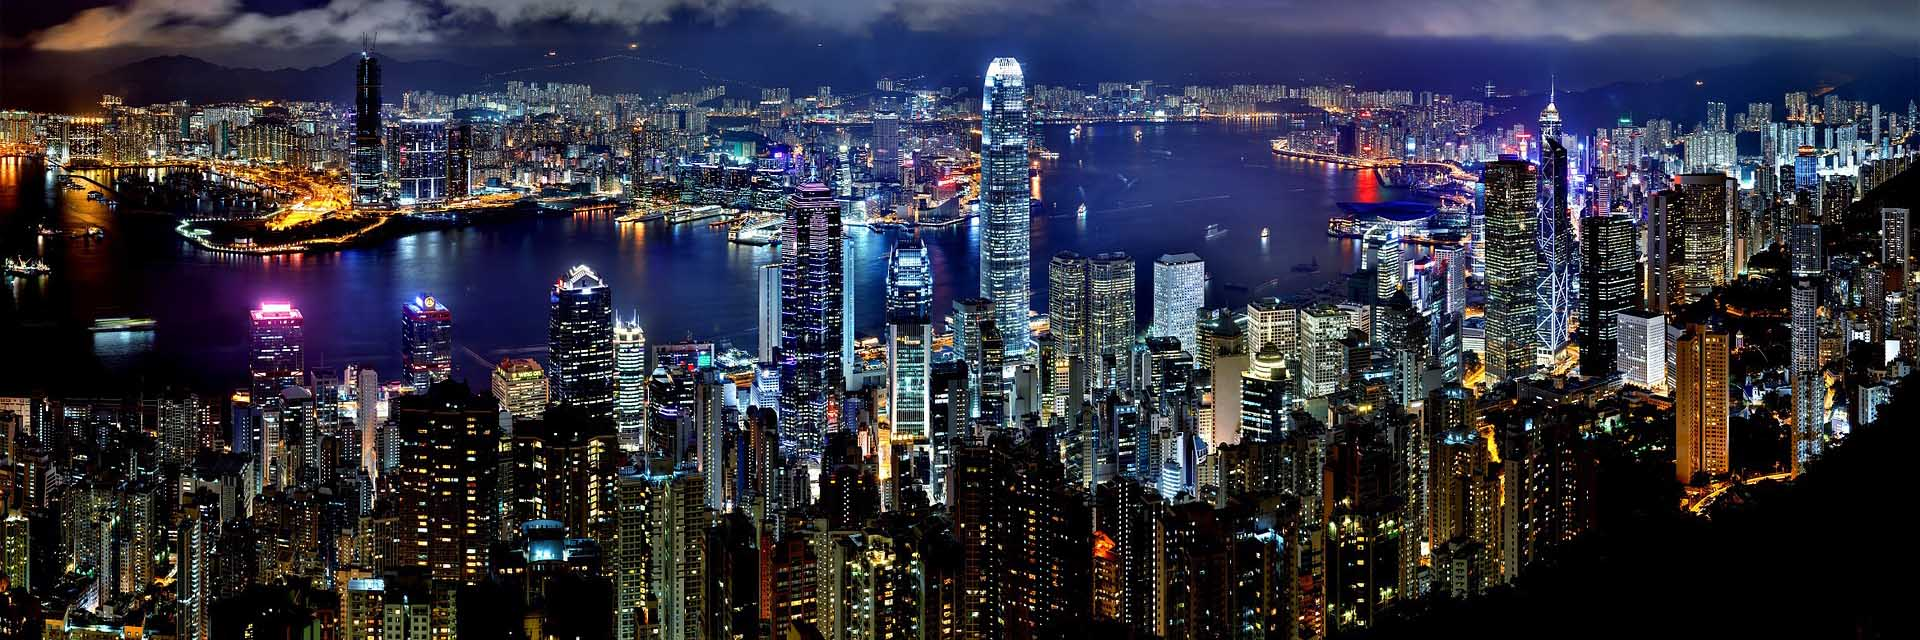 hong-kong-city-sky-liine